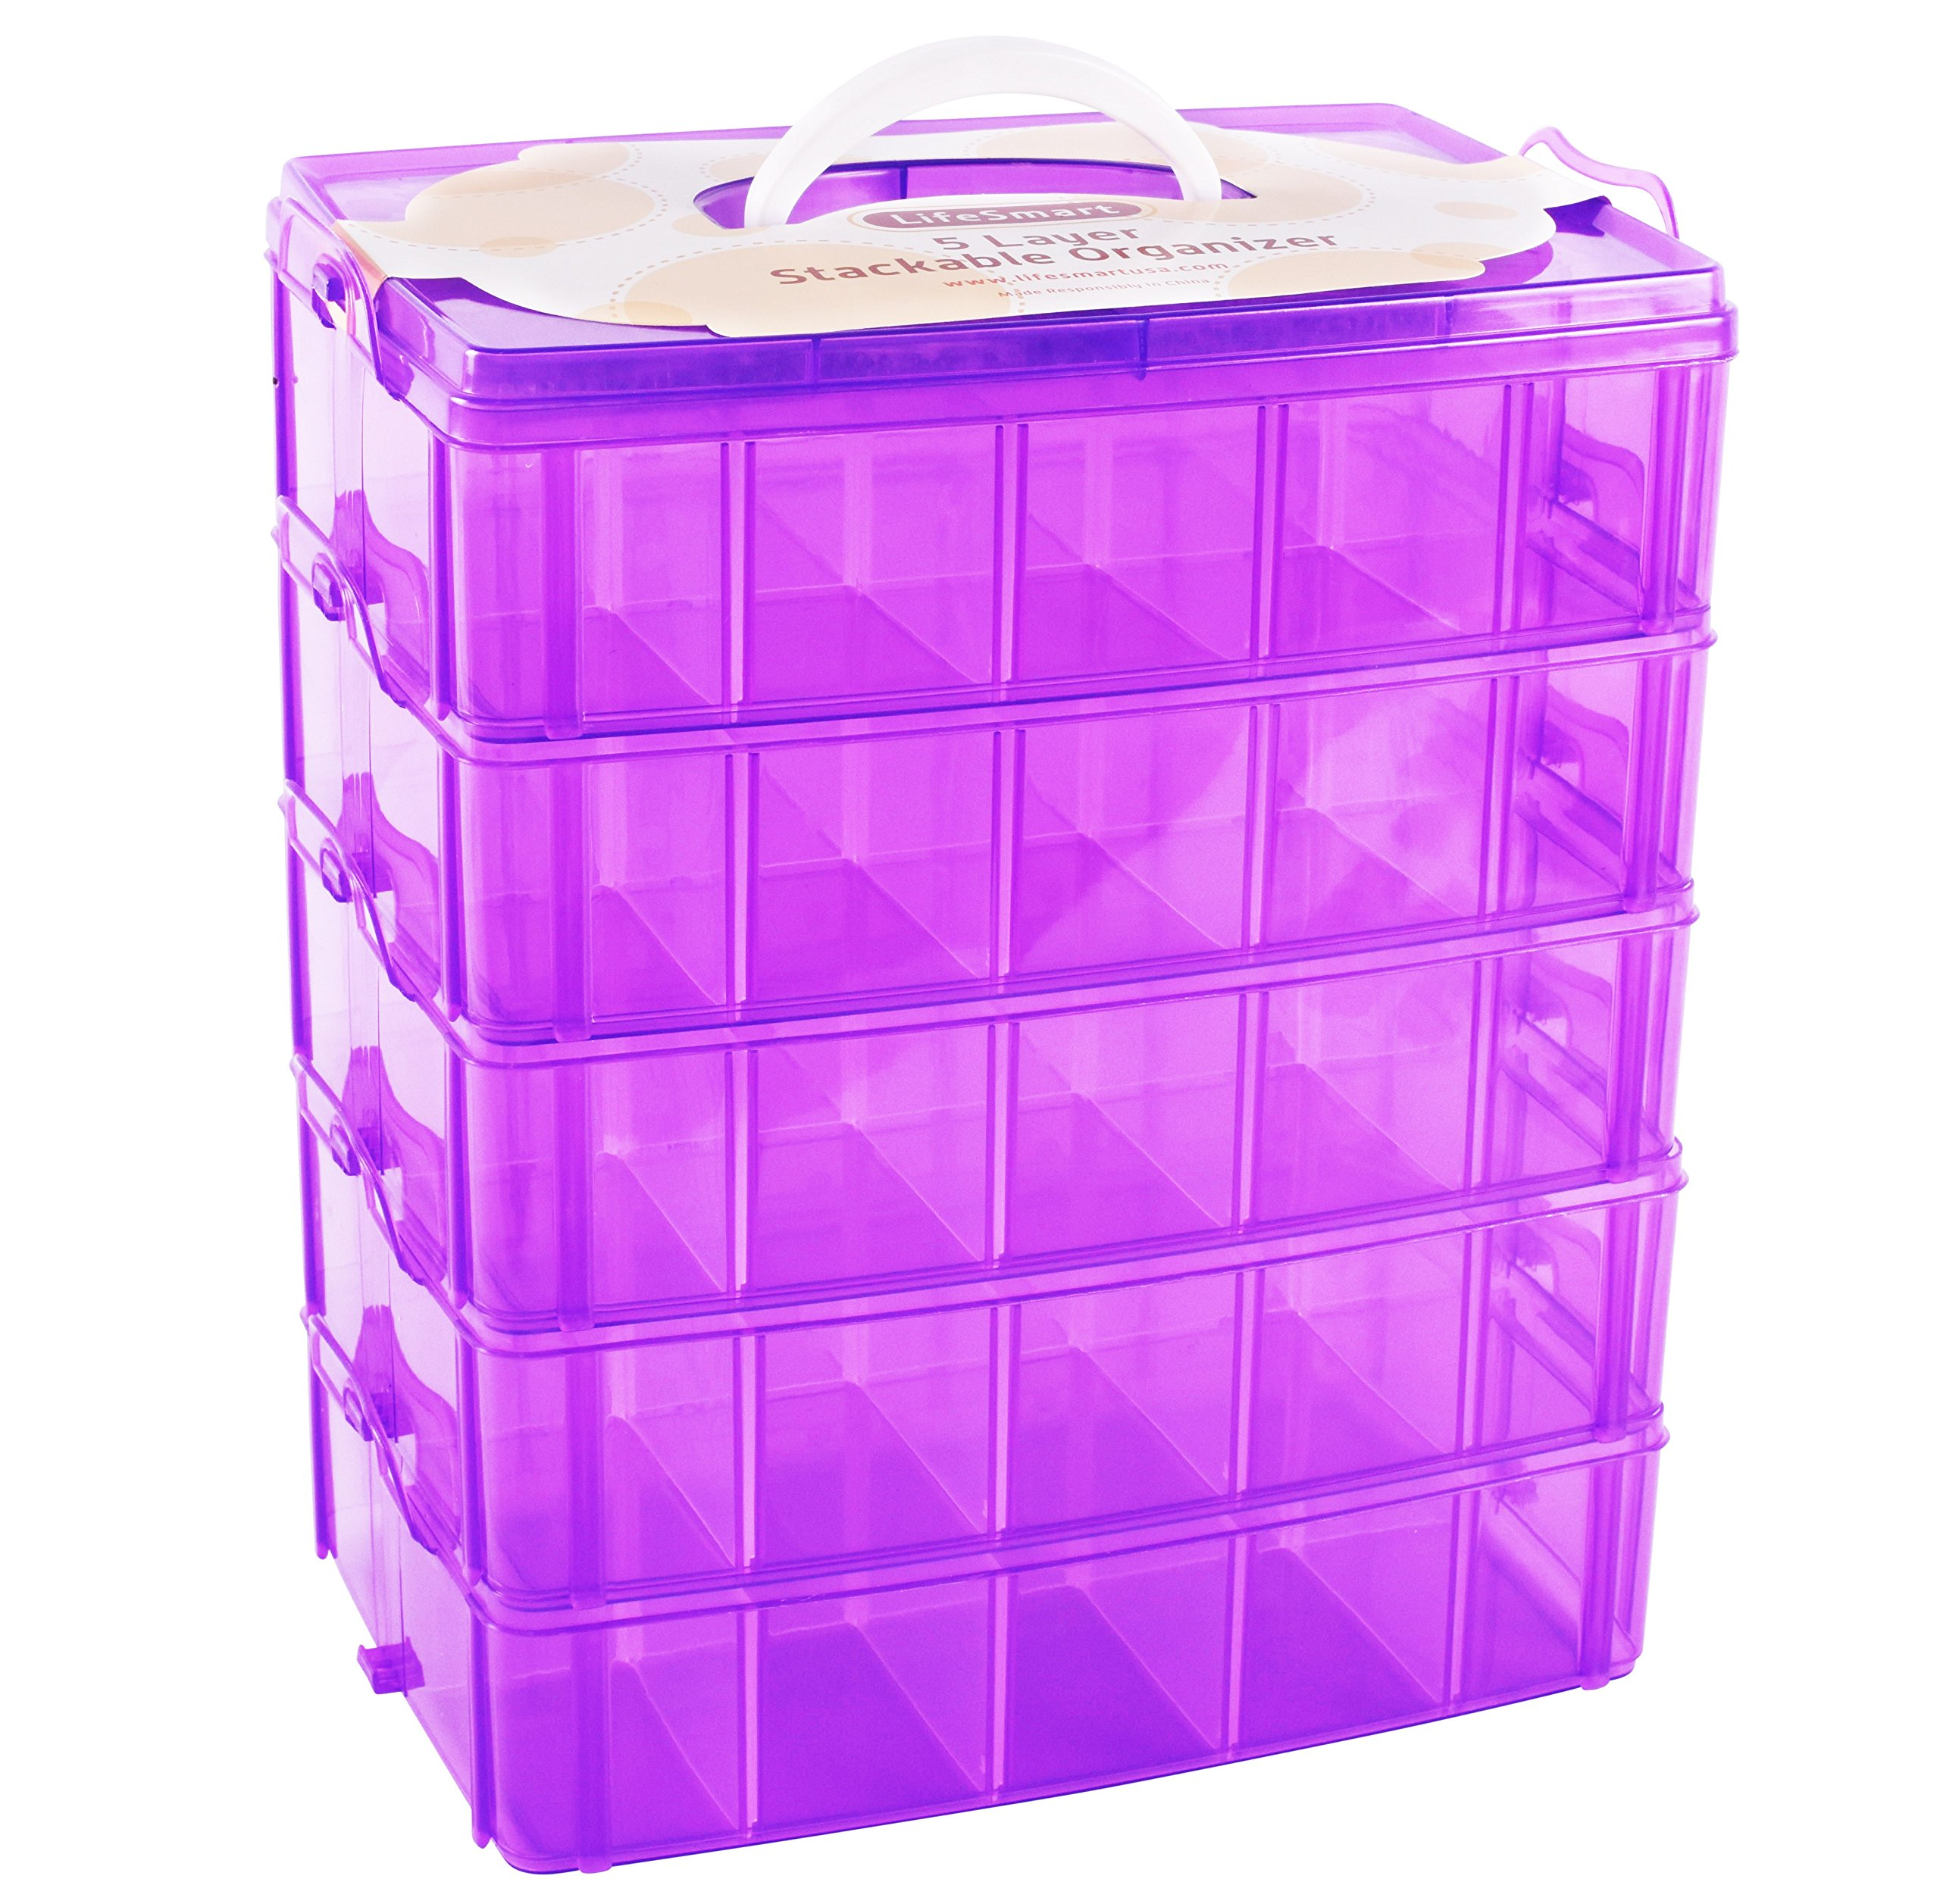 LifeSmart USA Stackable Storage Container Purple - 50 Adjustable Compartments - Store More Than All Other Cases - Lego Dimensions - Shopkins - Littlest Pet Shop - Arts and Crafts - and More!